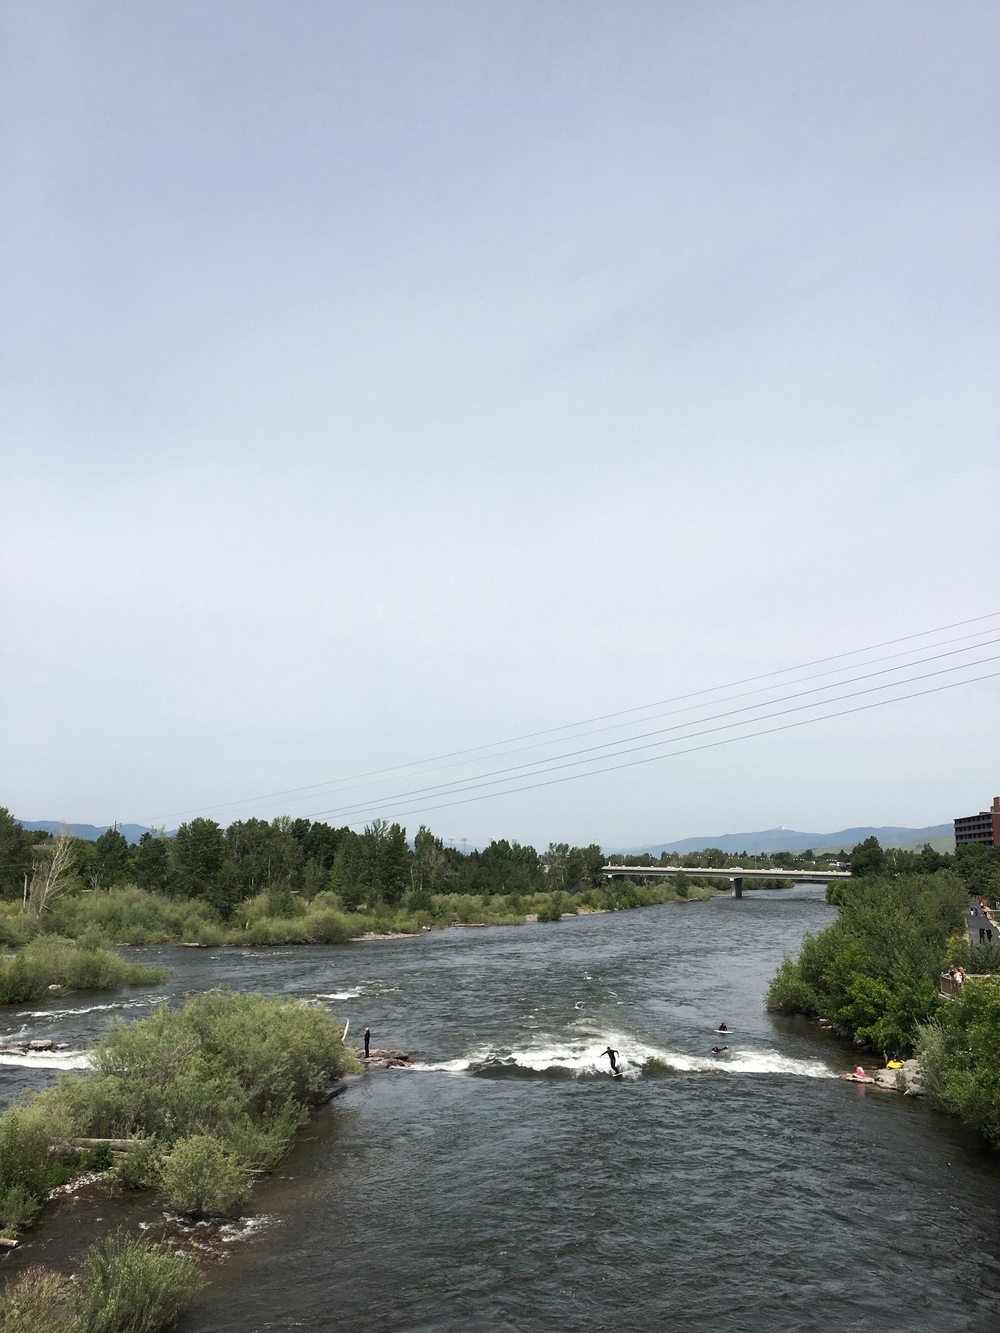 We began the day with some great toast at a cute cafe in Missoula, MT. Some surfers were having fun on the Clark Fork River we crossed over.